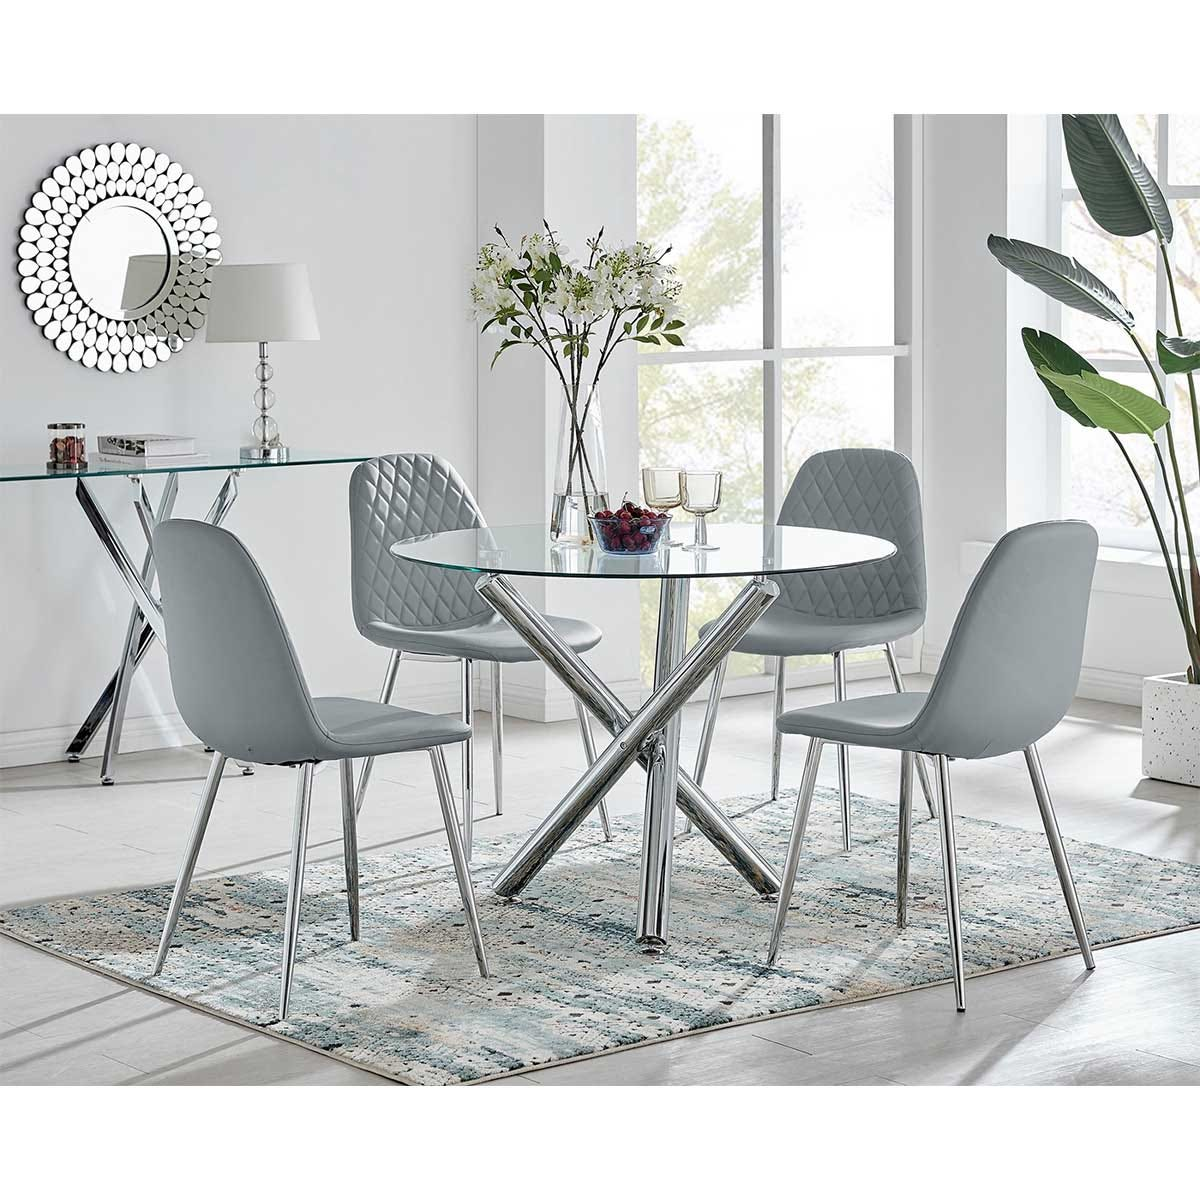 Furniture Box Selina Round Dining Table and 4 Grey Corona Silver Leg Chairs